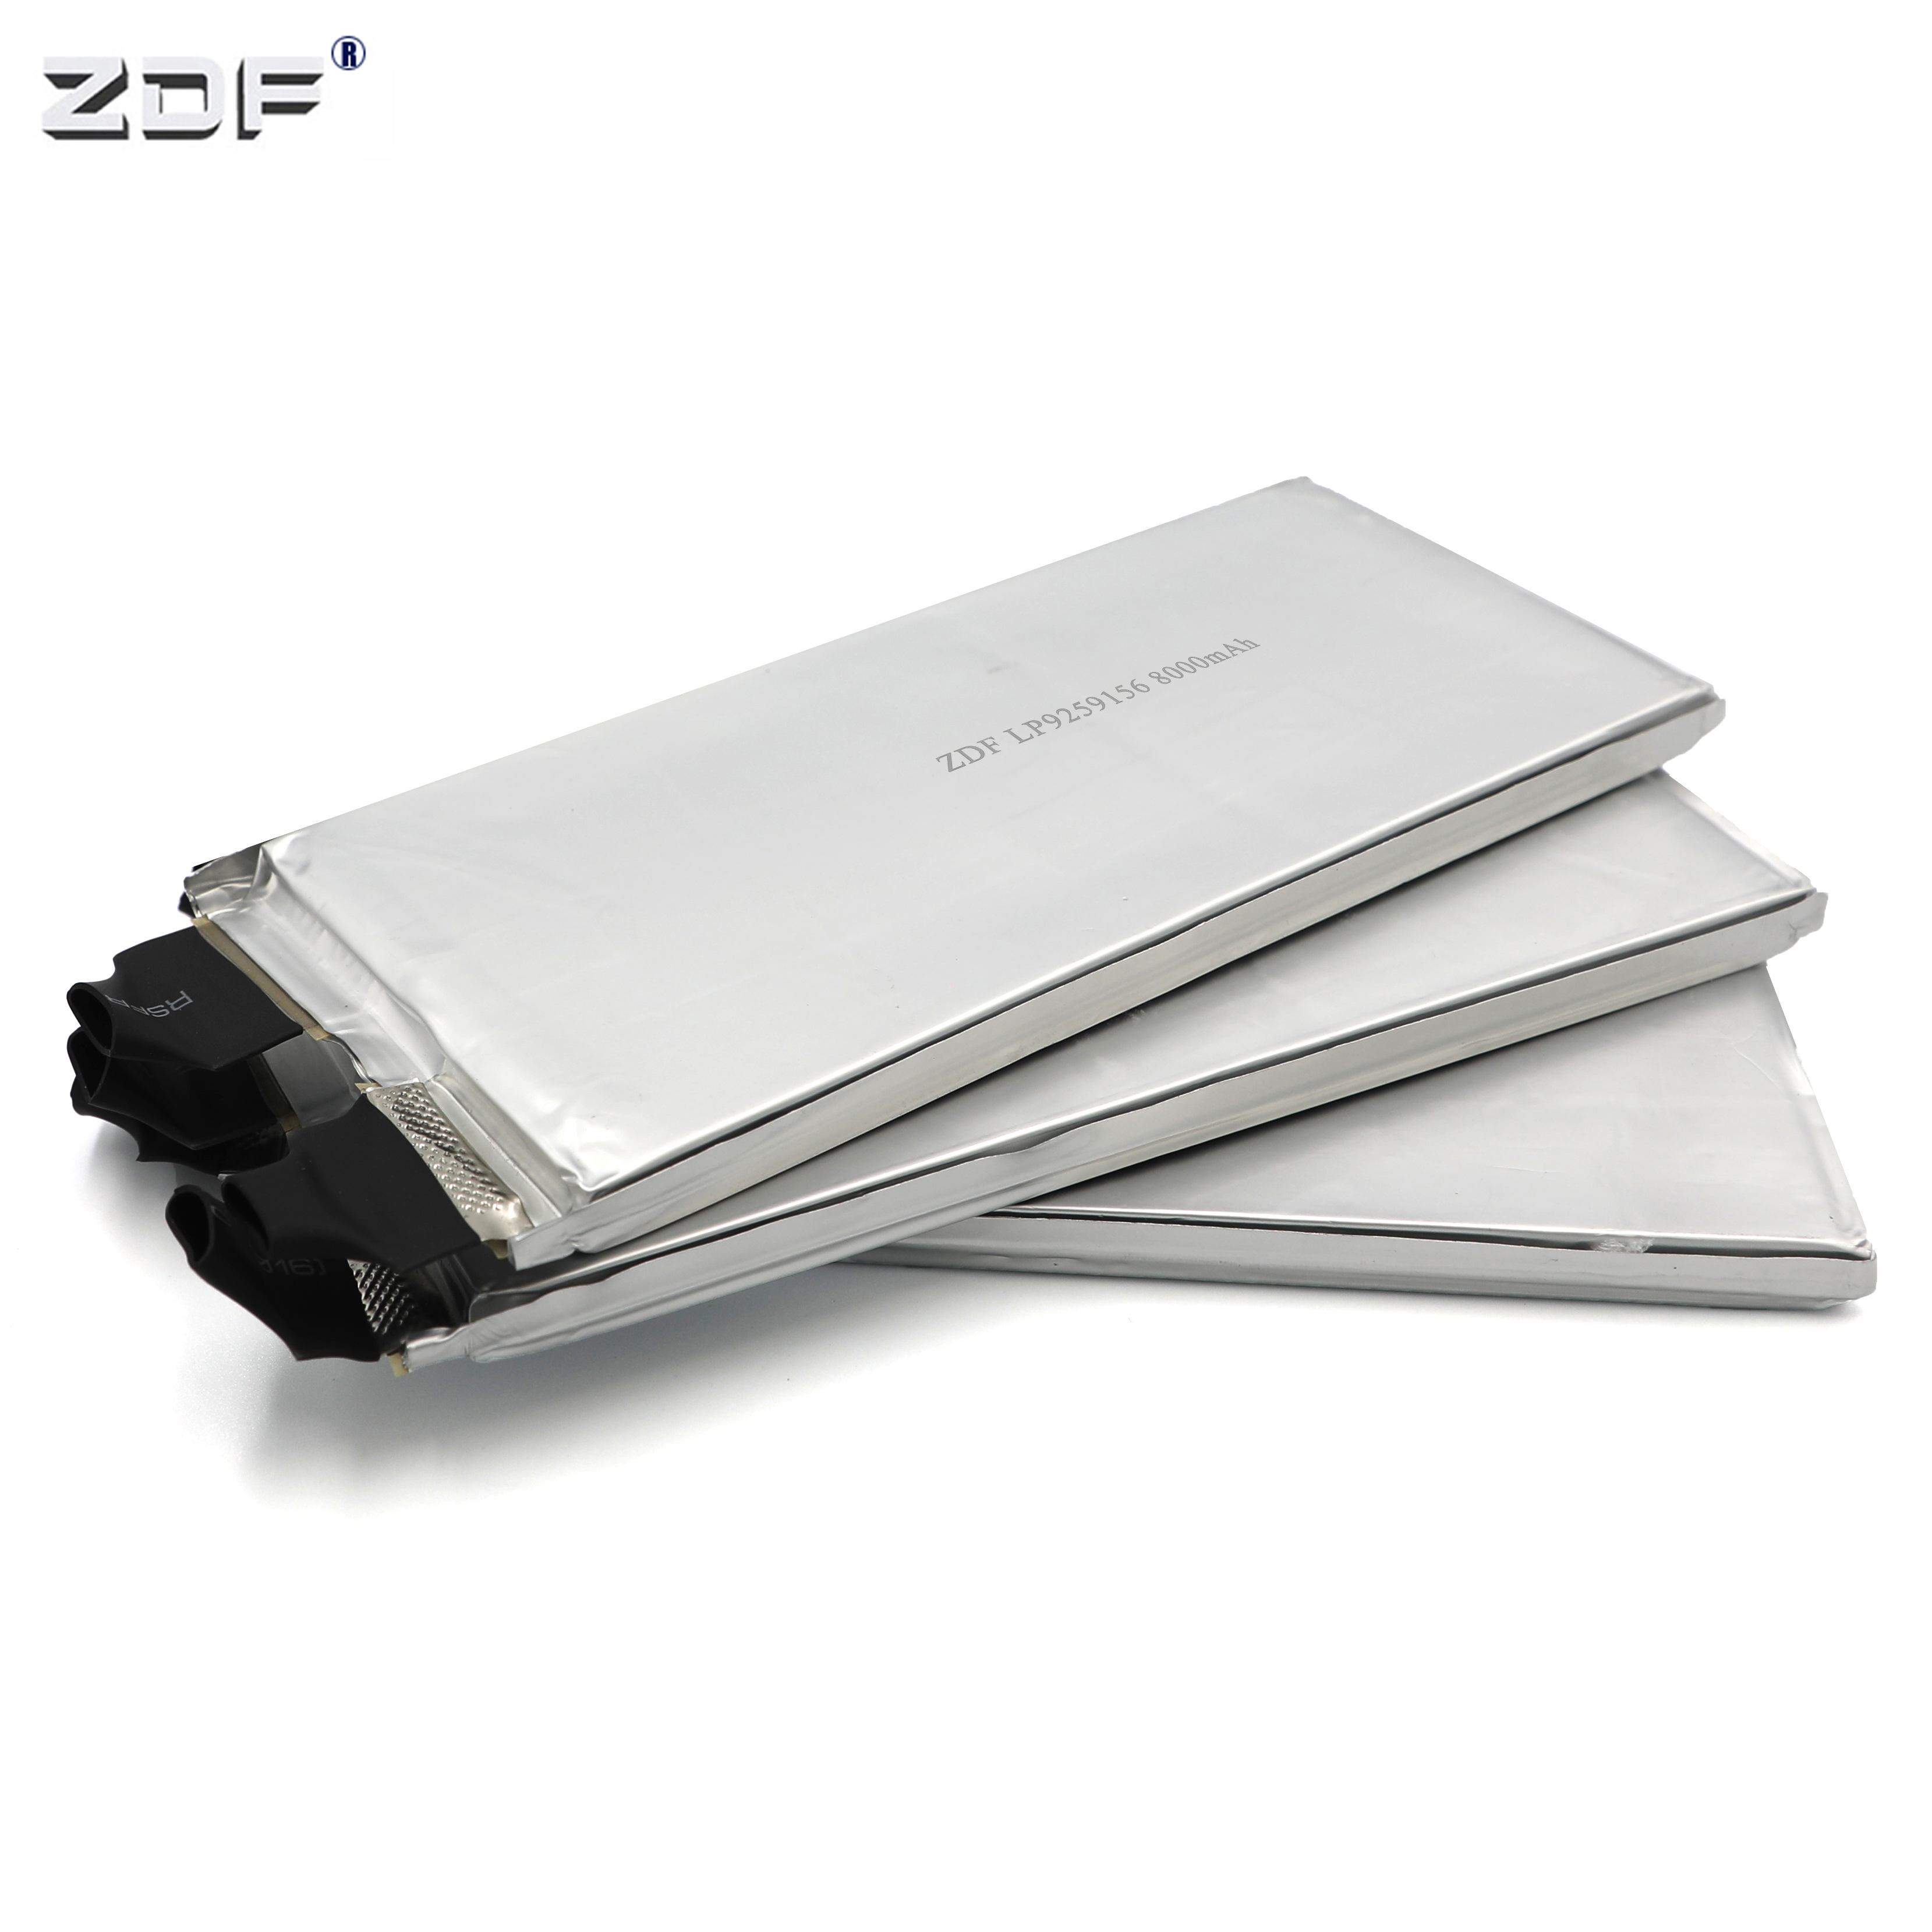 ZDF 3.7V 5000mAh 6000mAh 8000mah 10000mAh 12000mAh 16000mAh 25C 35C 50C  Lipo Battery Cell For Diy RC UAV Drone 2S 3S 4S 5S 6S